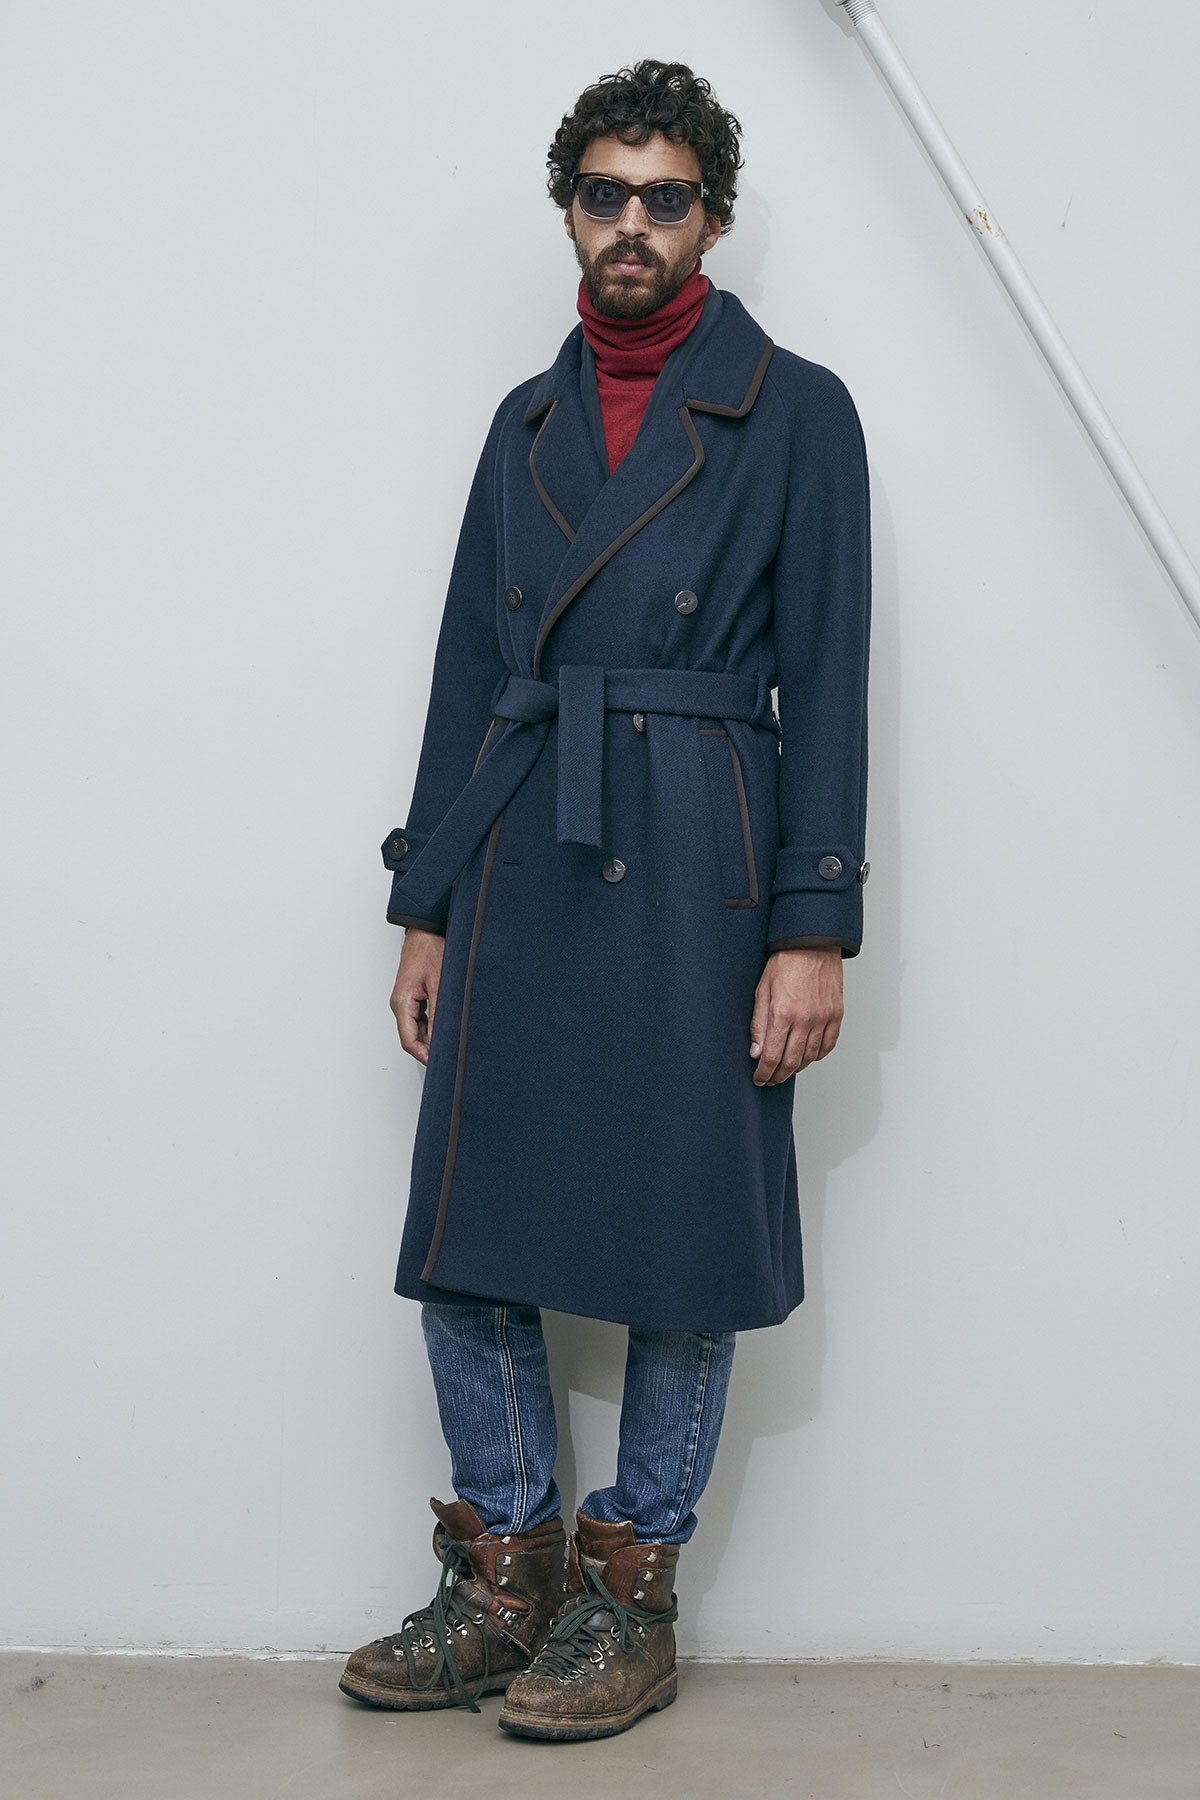 76dbc8bade2aeb K.K. WOOL TRENCH COAT ...